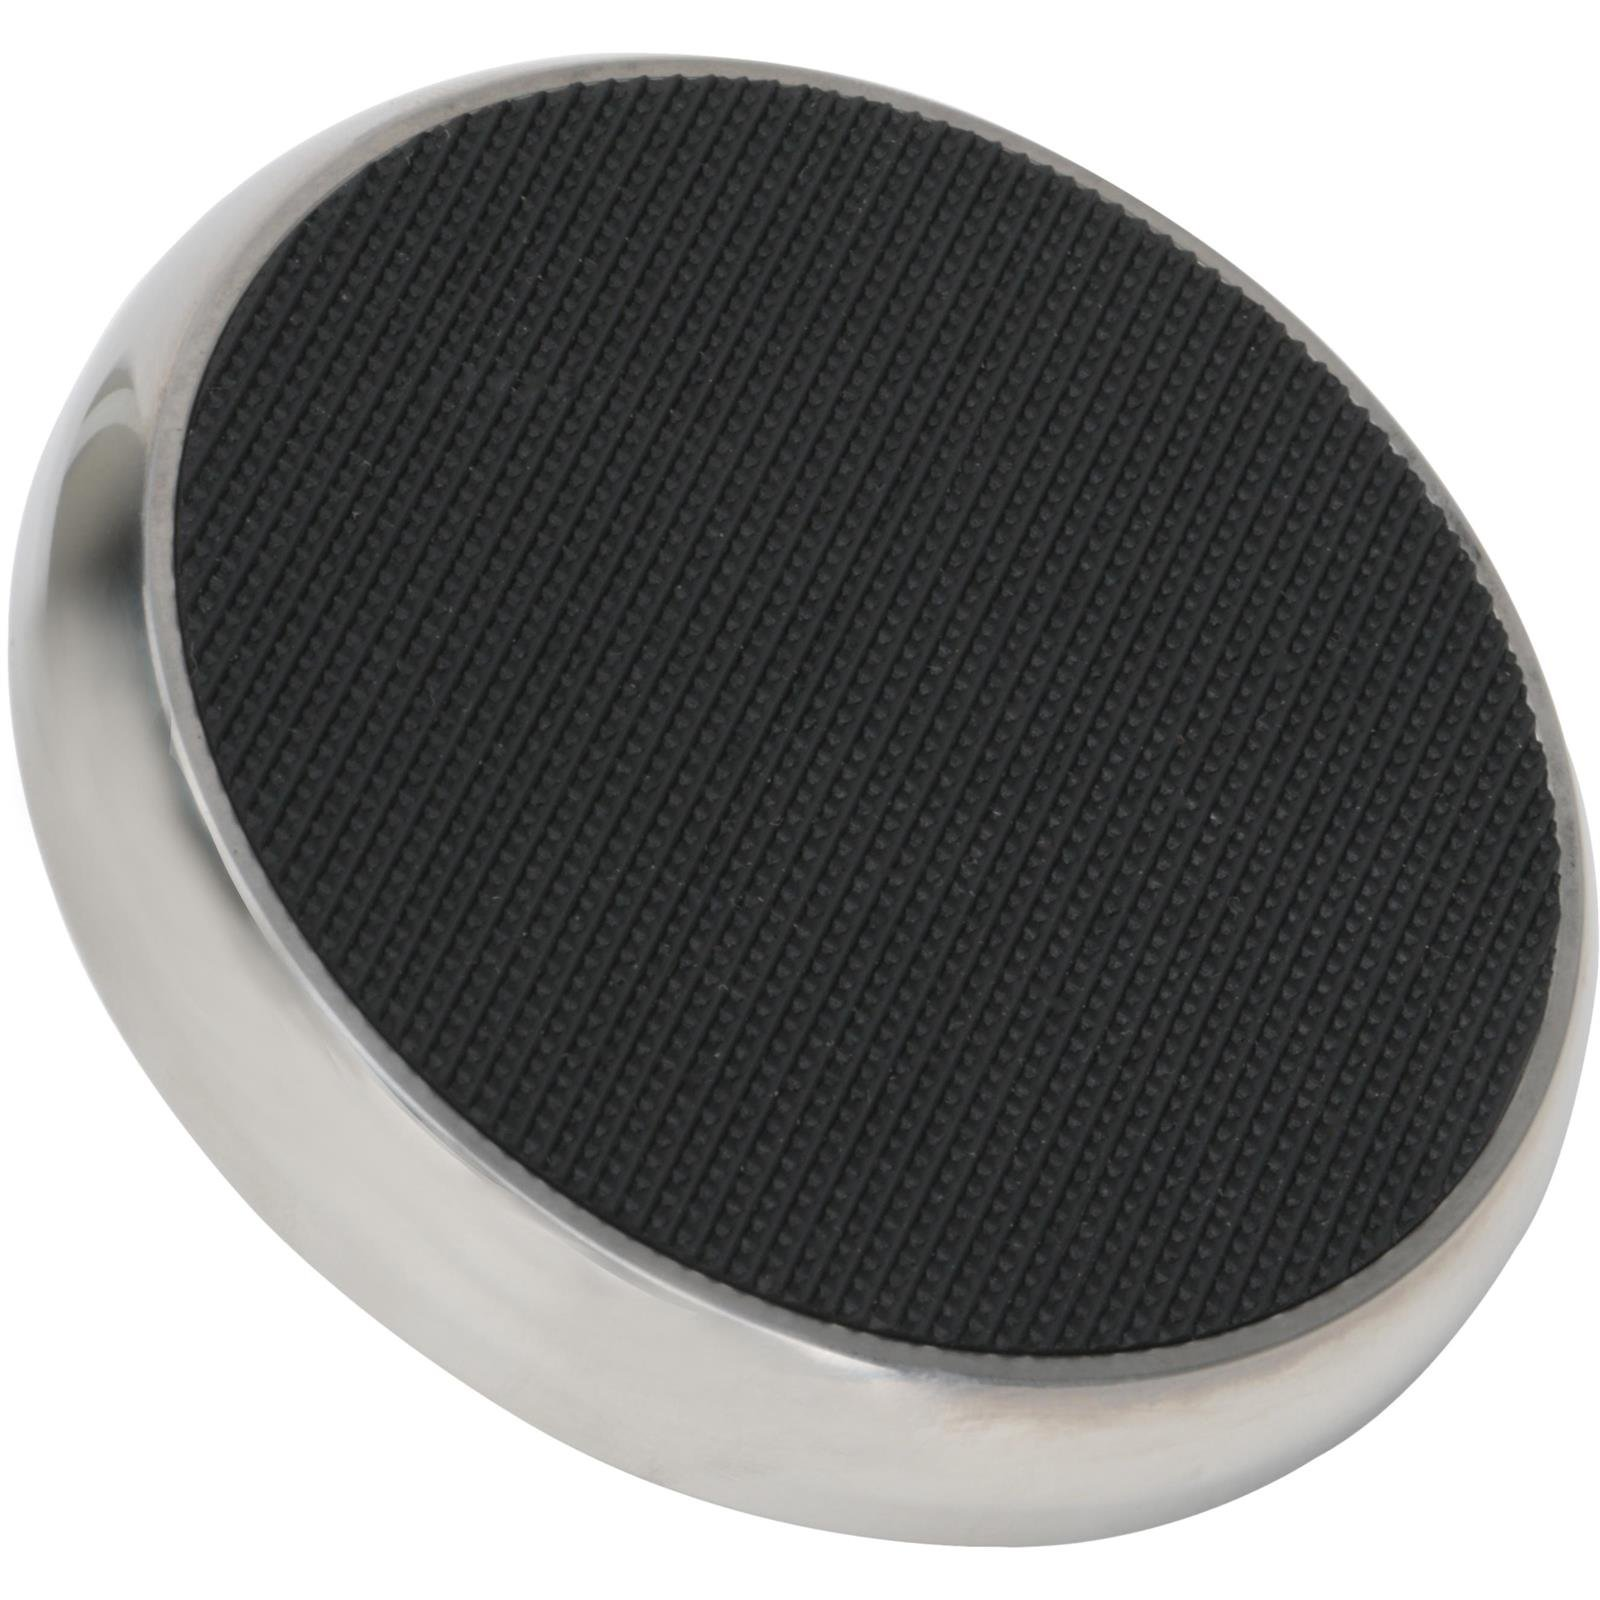 Brake Pedal Foot Pad, Round, Stainless Steel